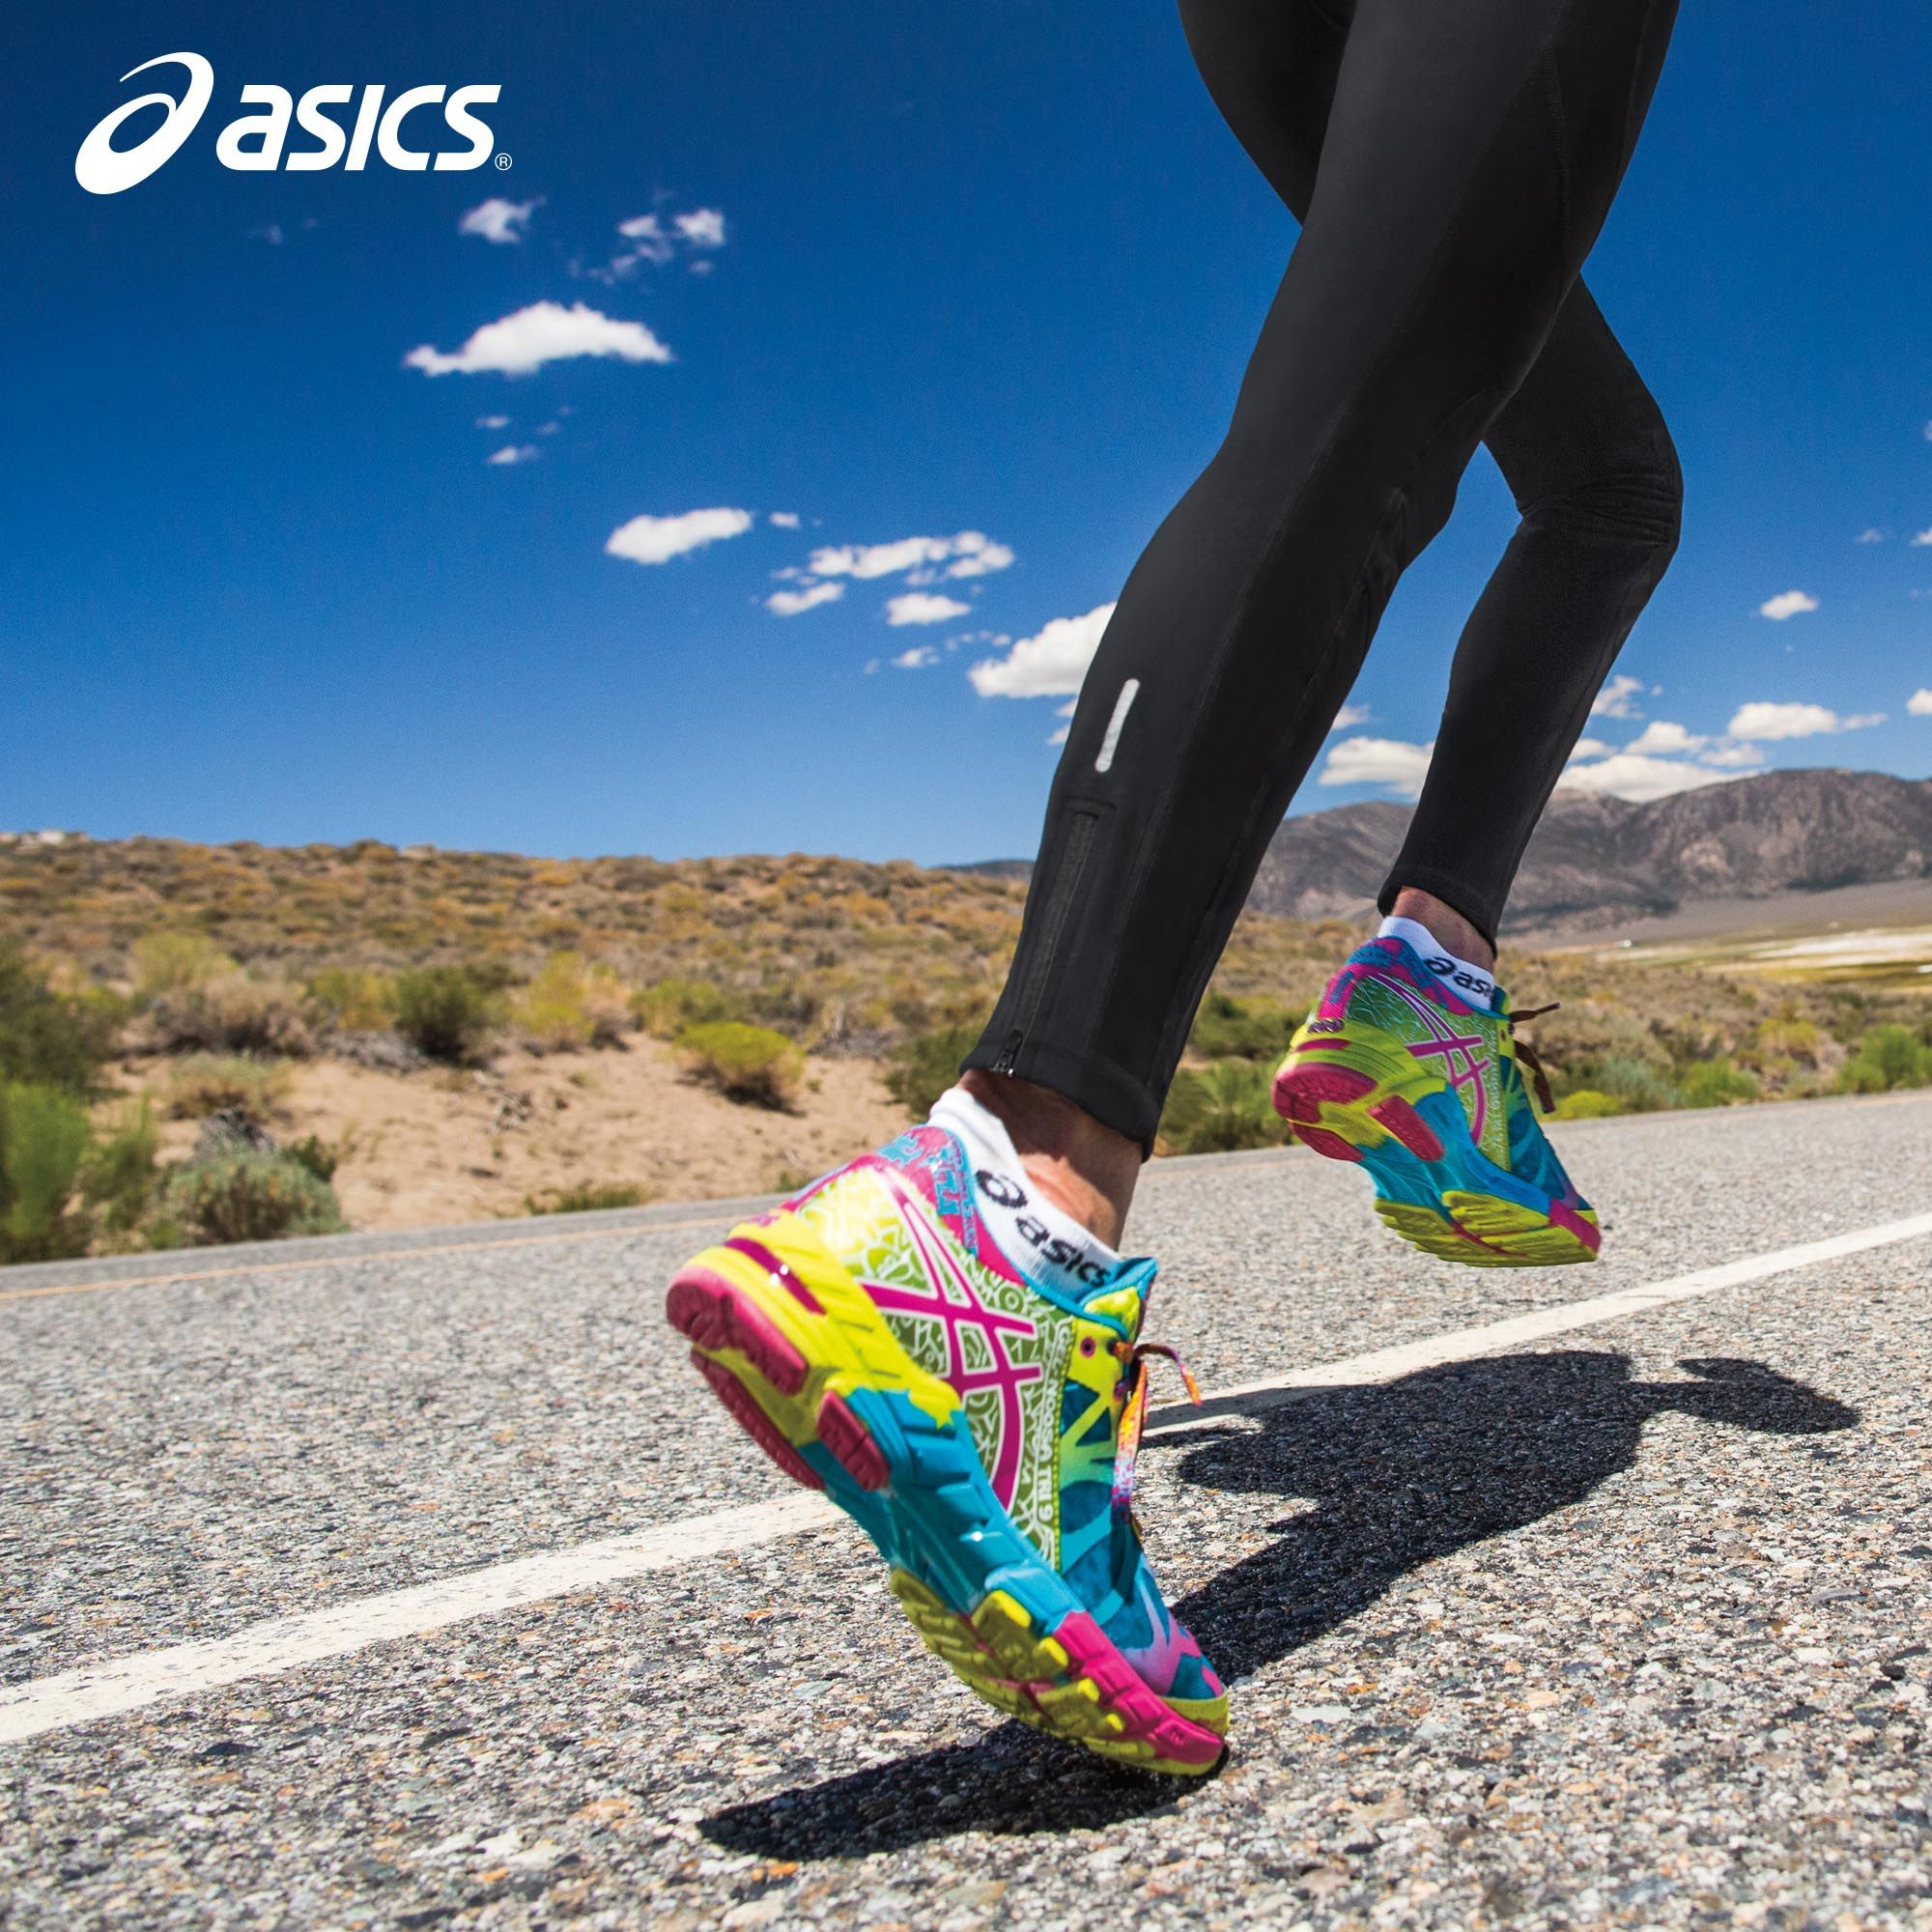 SHOES RUNNING TENIS PARA CORRER ASICS MEDELLIN COLOMBIA ...